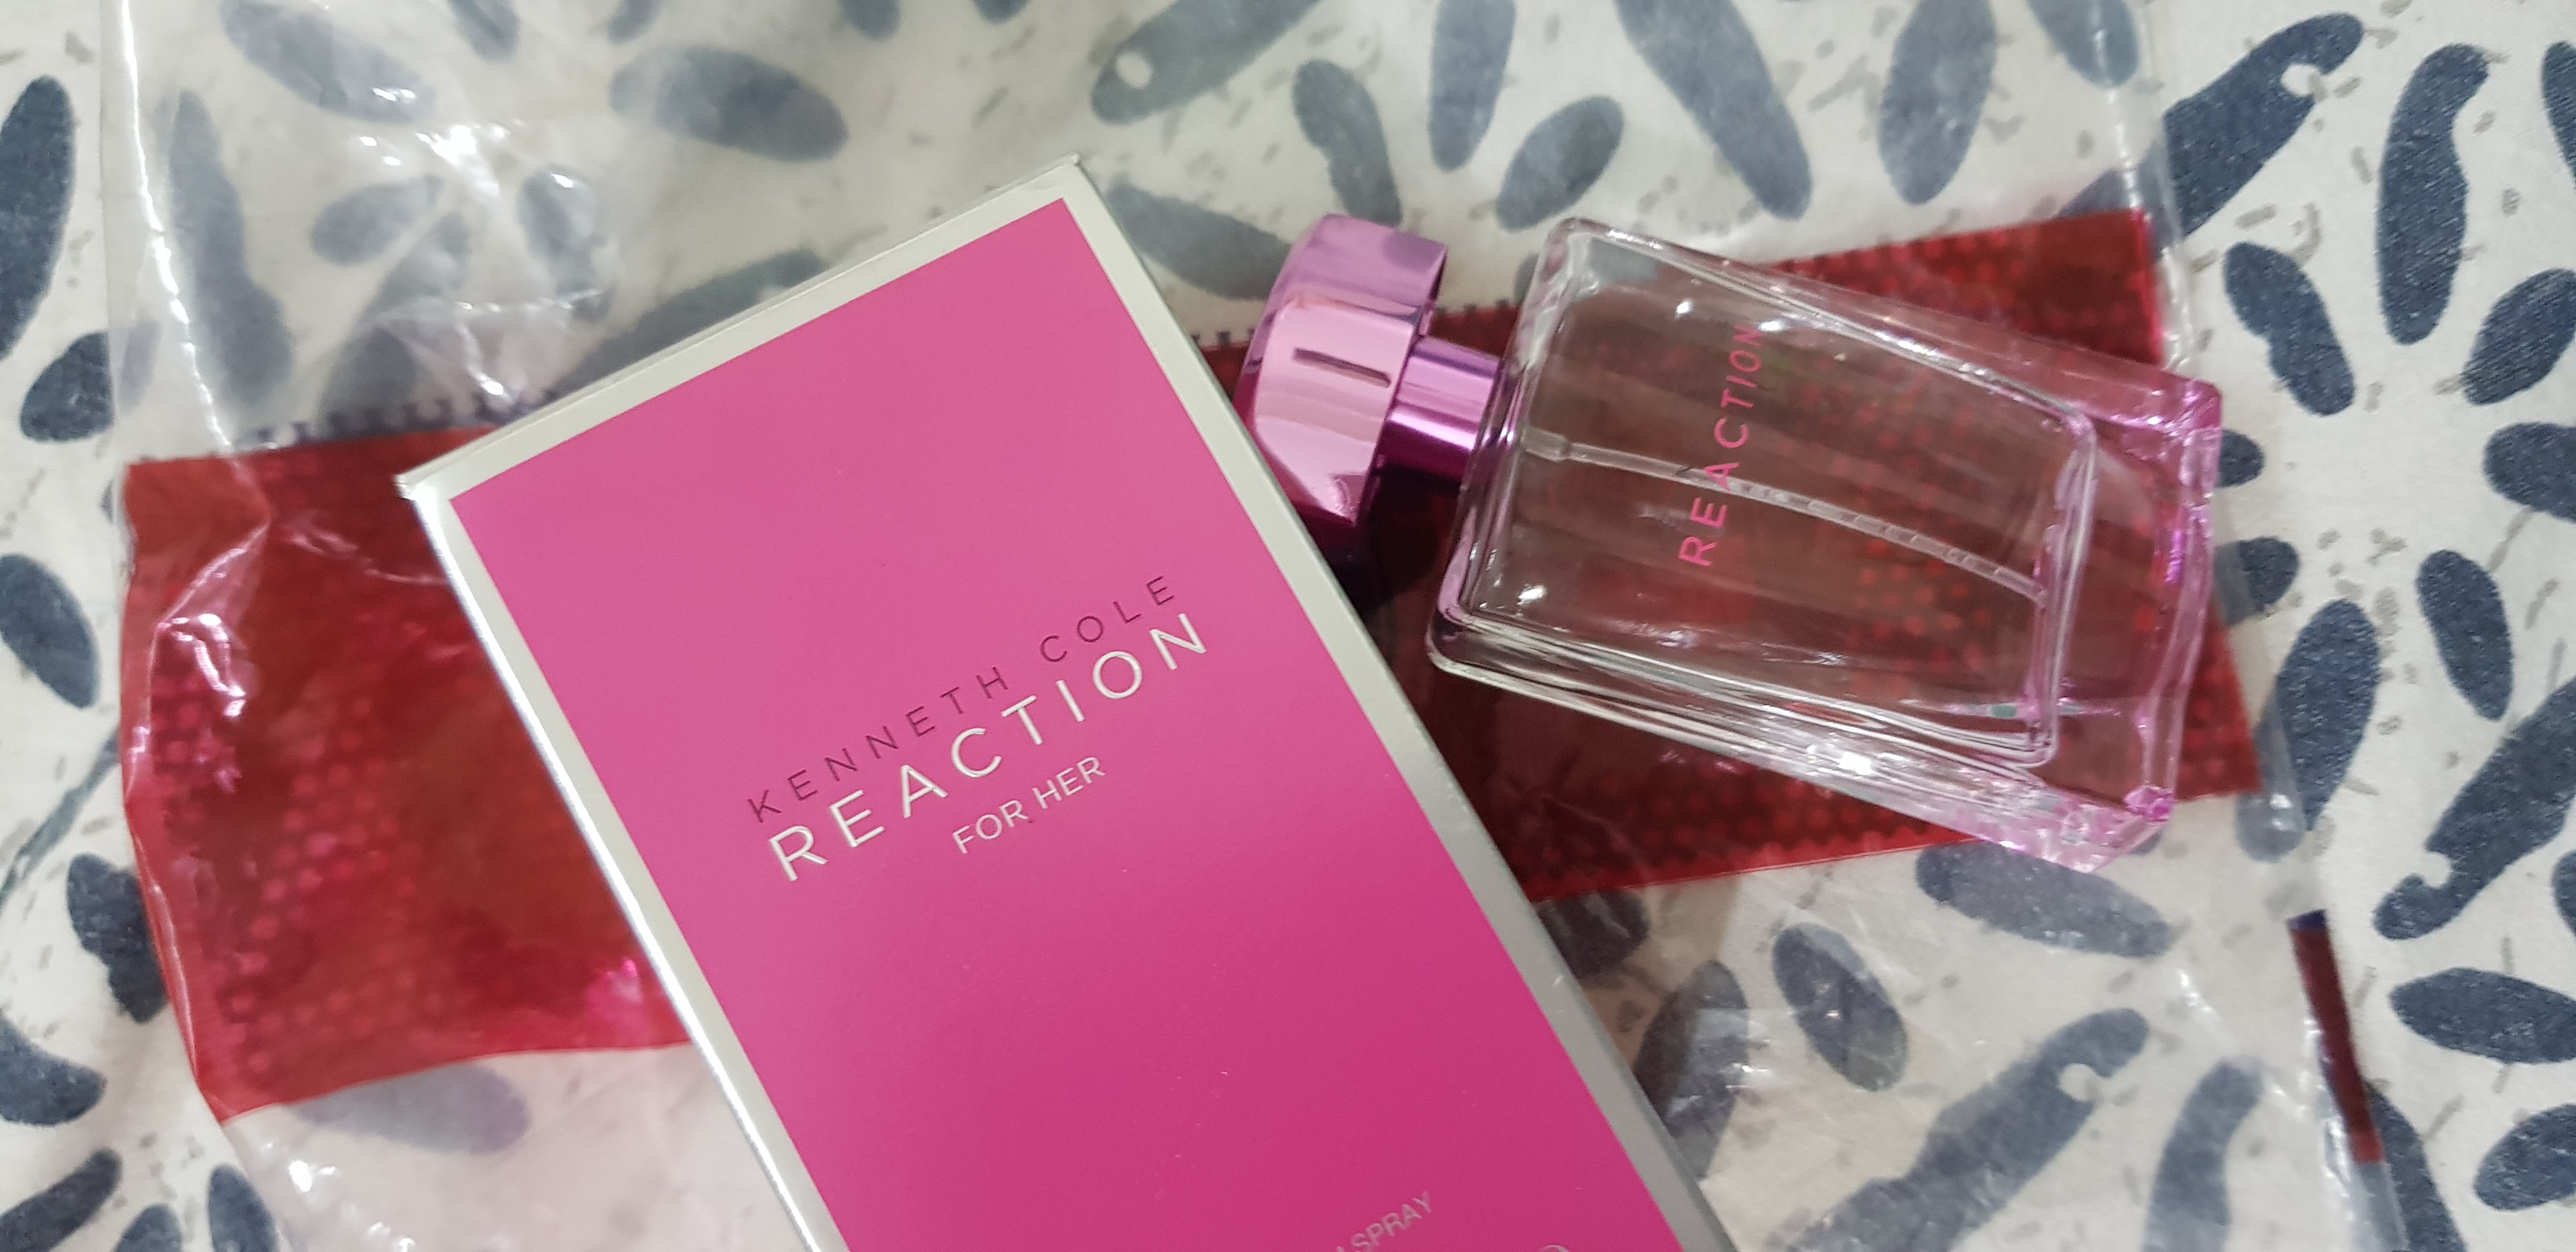 Kenneth Cole Reaction For Her Eau De Parfum-Just the perfect Perfume!-By poonam_kakkar